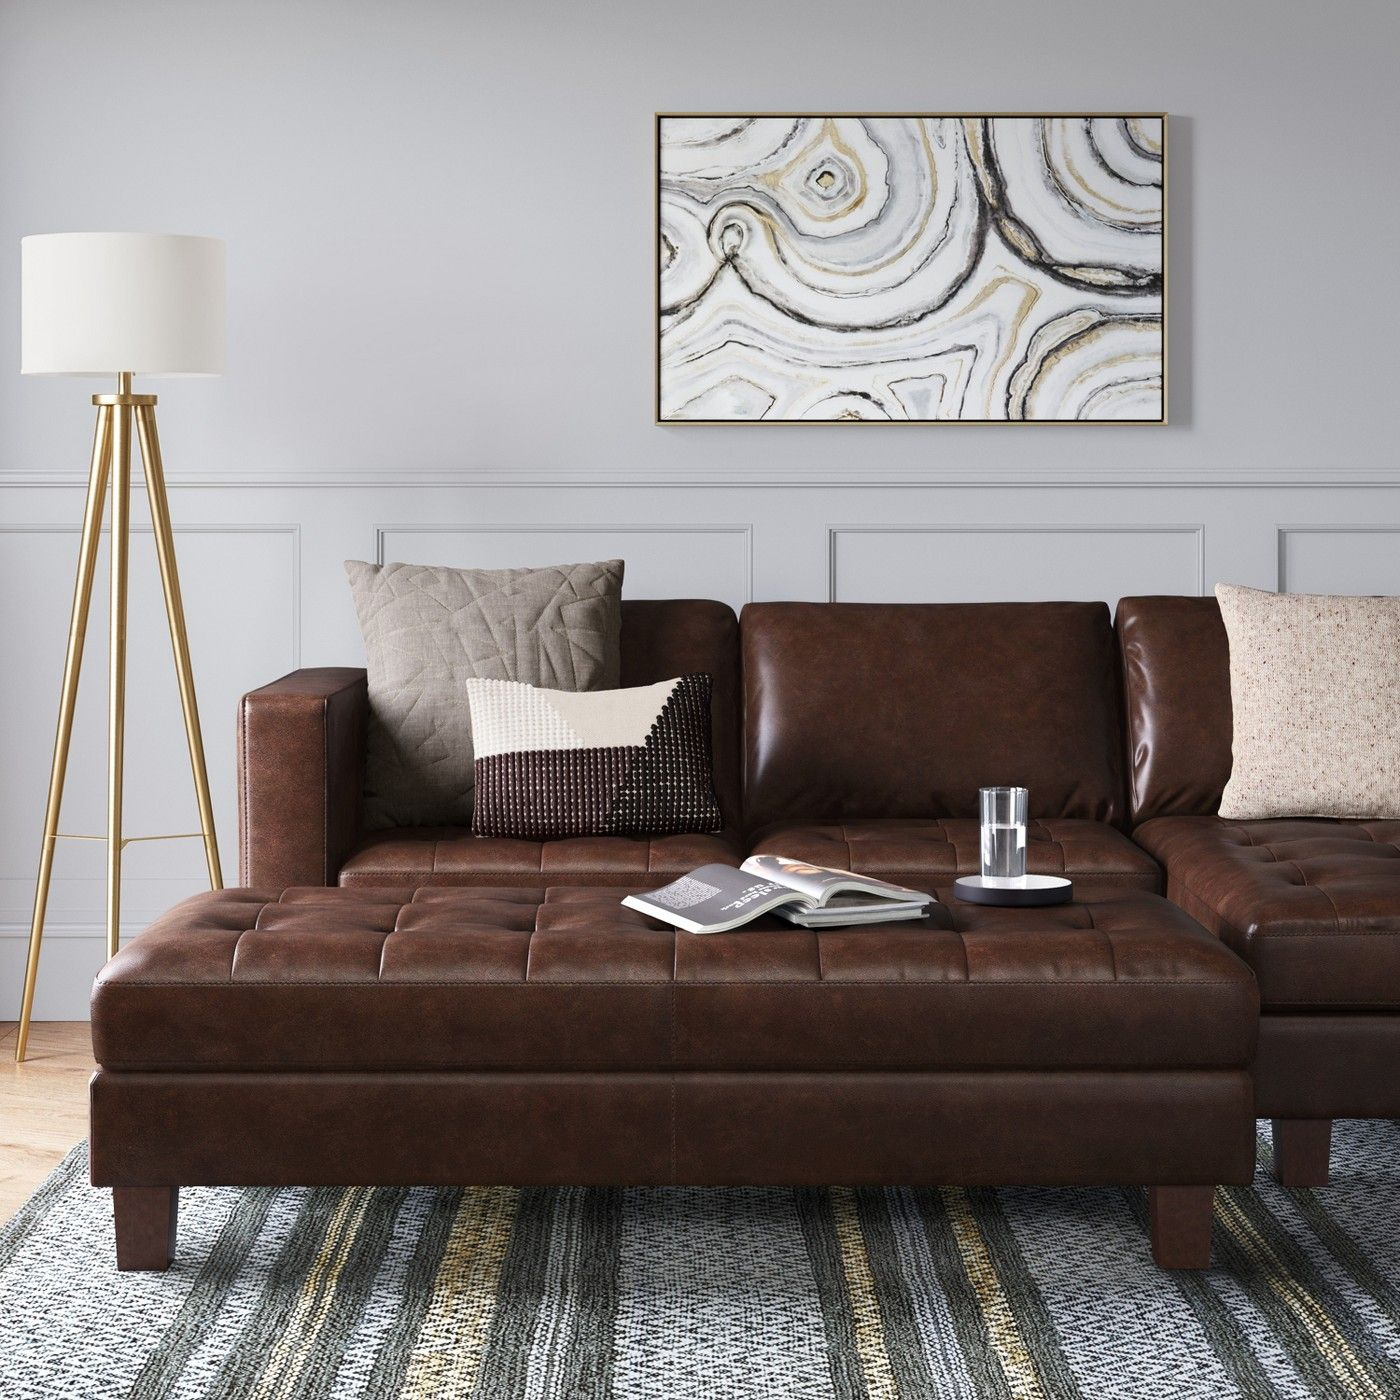 Faux Leather Sofa In A Box Edgemere Sectional Sofa And Large Ottoman Faux Leather Brown